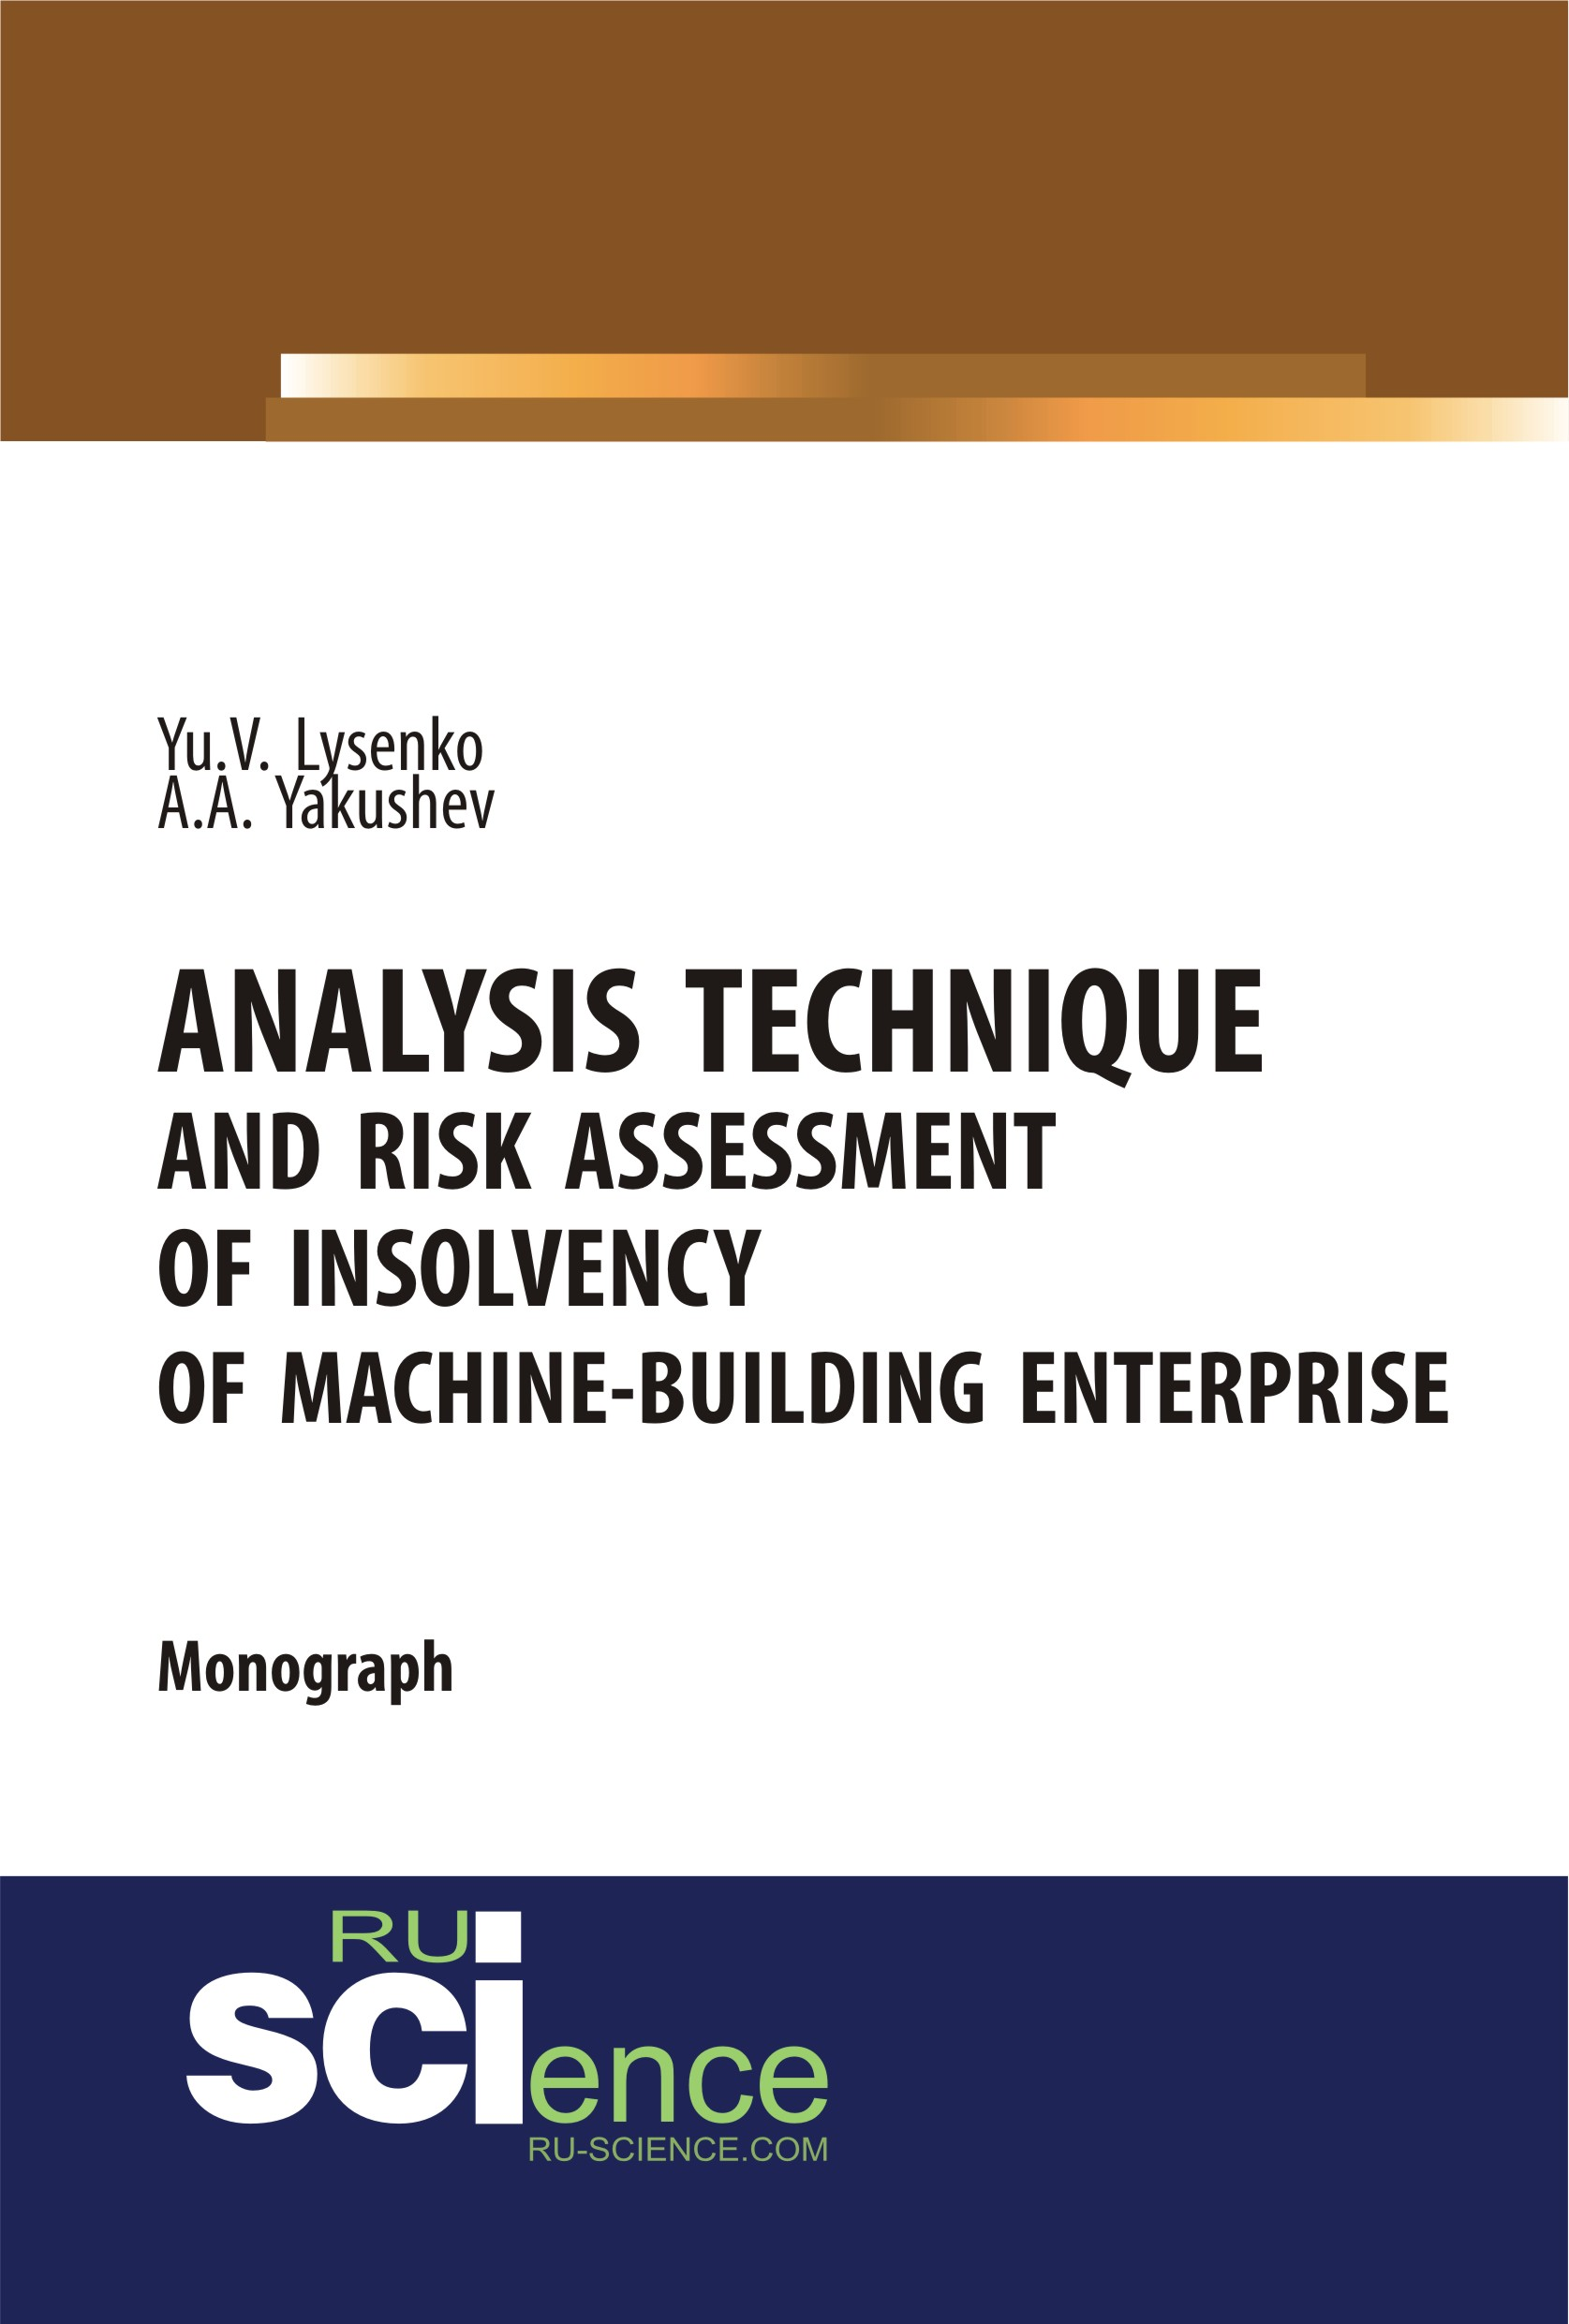 Ю. В. Лысенко Analysis technique and risk assessment of insolvency of machine-building enterprise johanna bötscher a neorealist assessment of india s look east policy